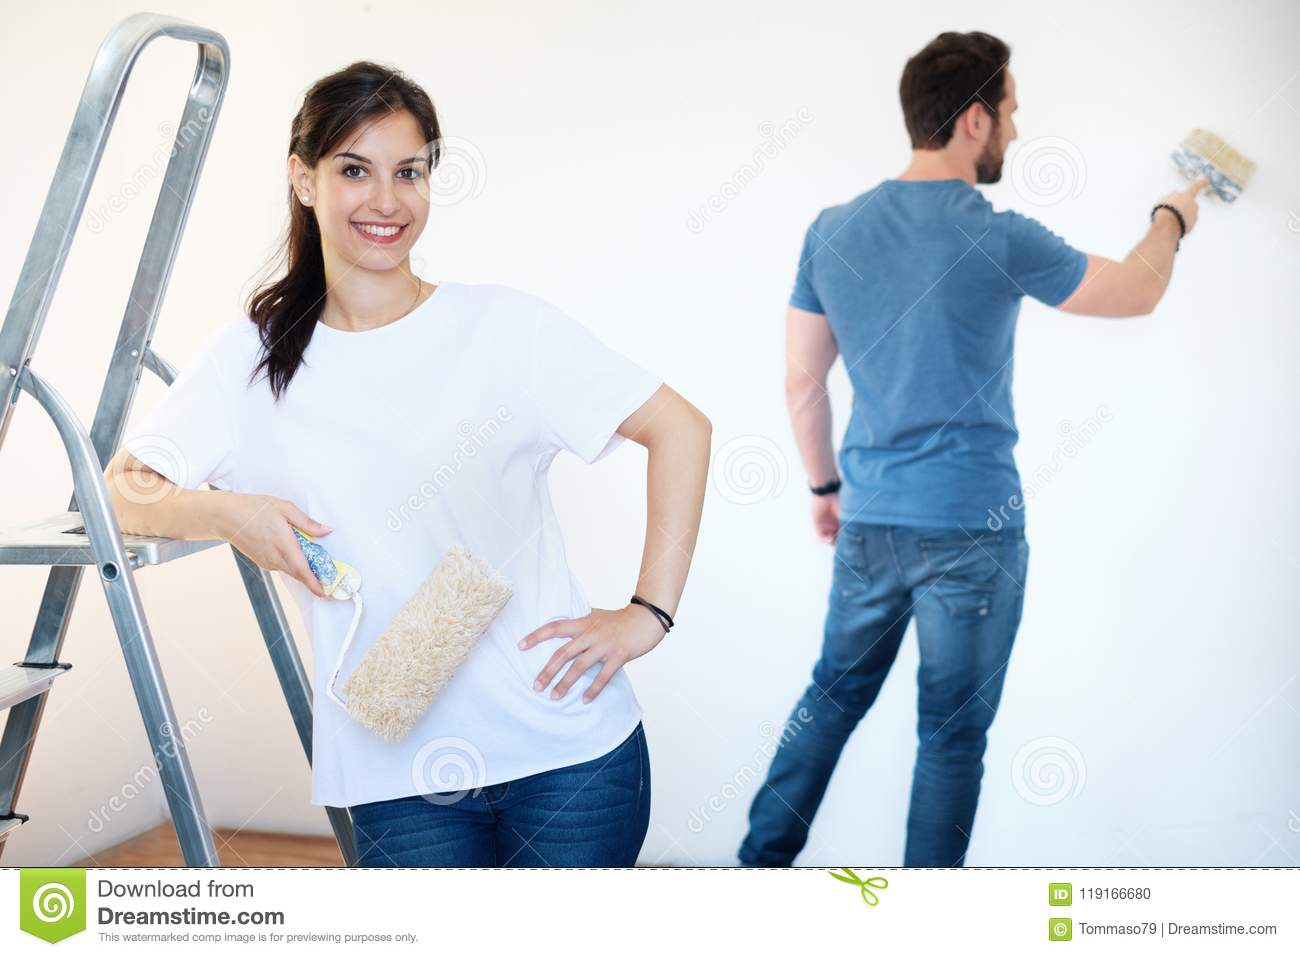 Download Renovation Diy Paint Couple In New Home Painting Wall Together Stock Photo